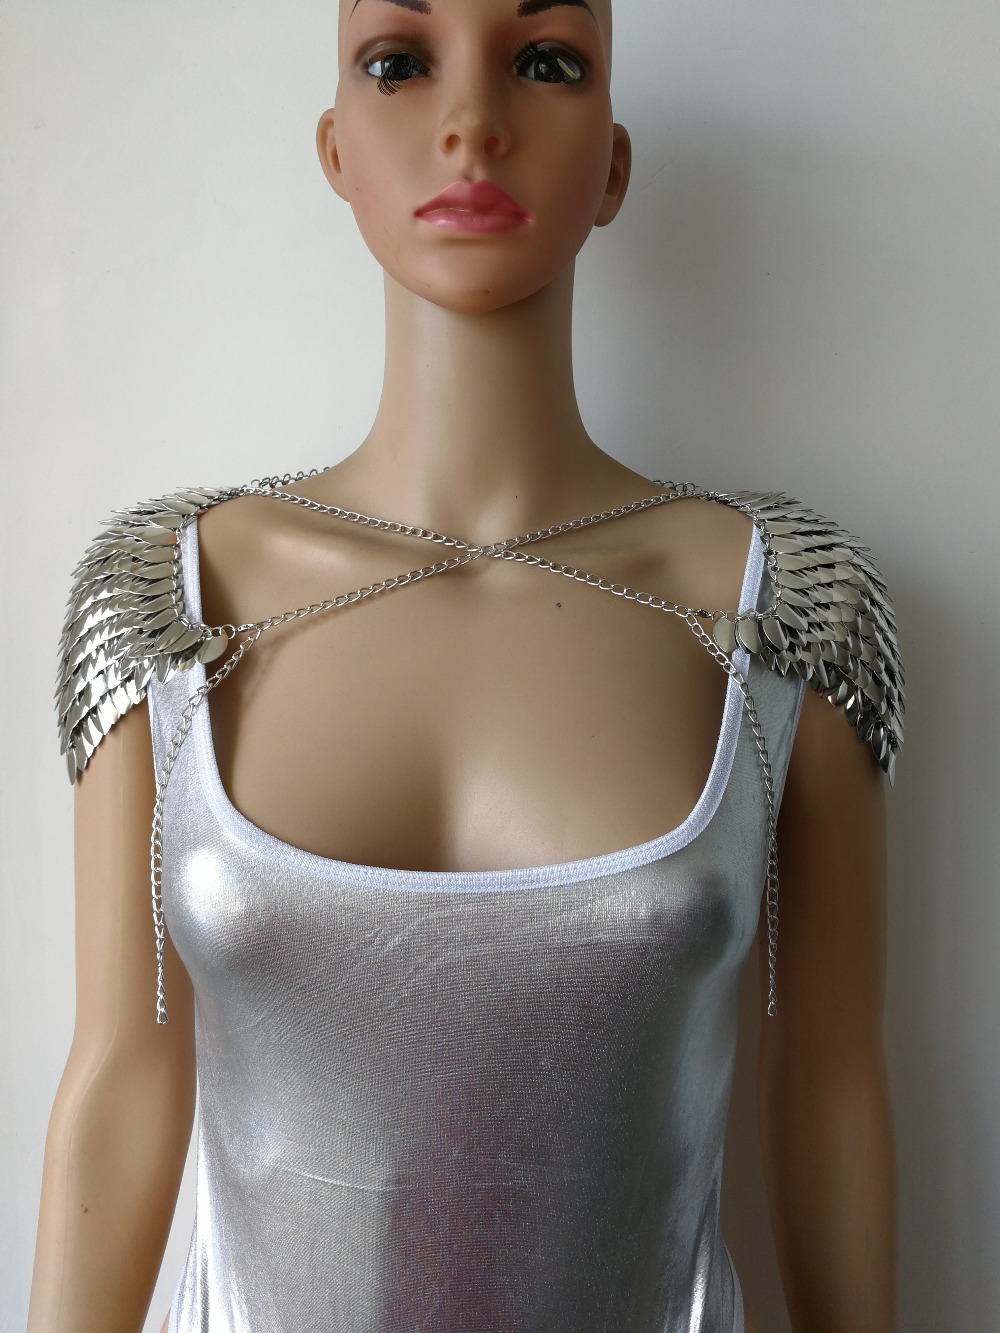 New Fashion Style B755 Silver Scalemail Mermaid Fish Scales Shoulder Chains Layers Shoulder Body Chains Jewelry 2 Colors-in Body Jewelry from Jewelry & Accessories    1